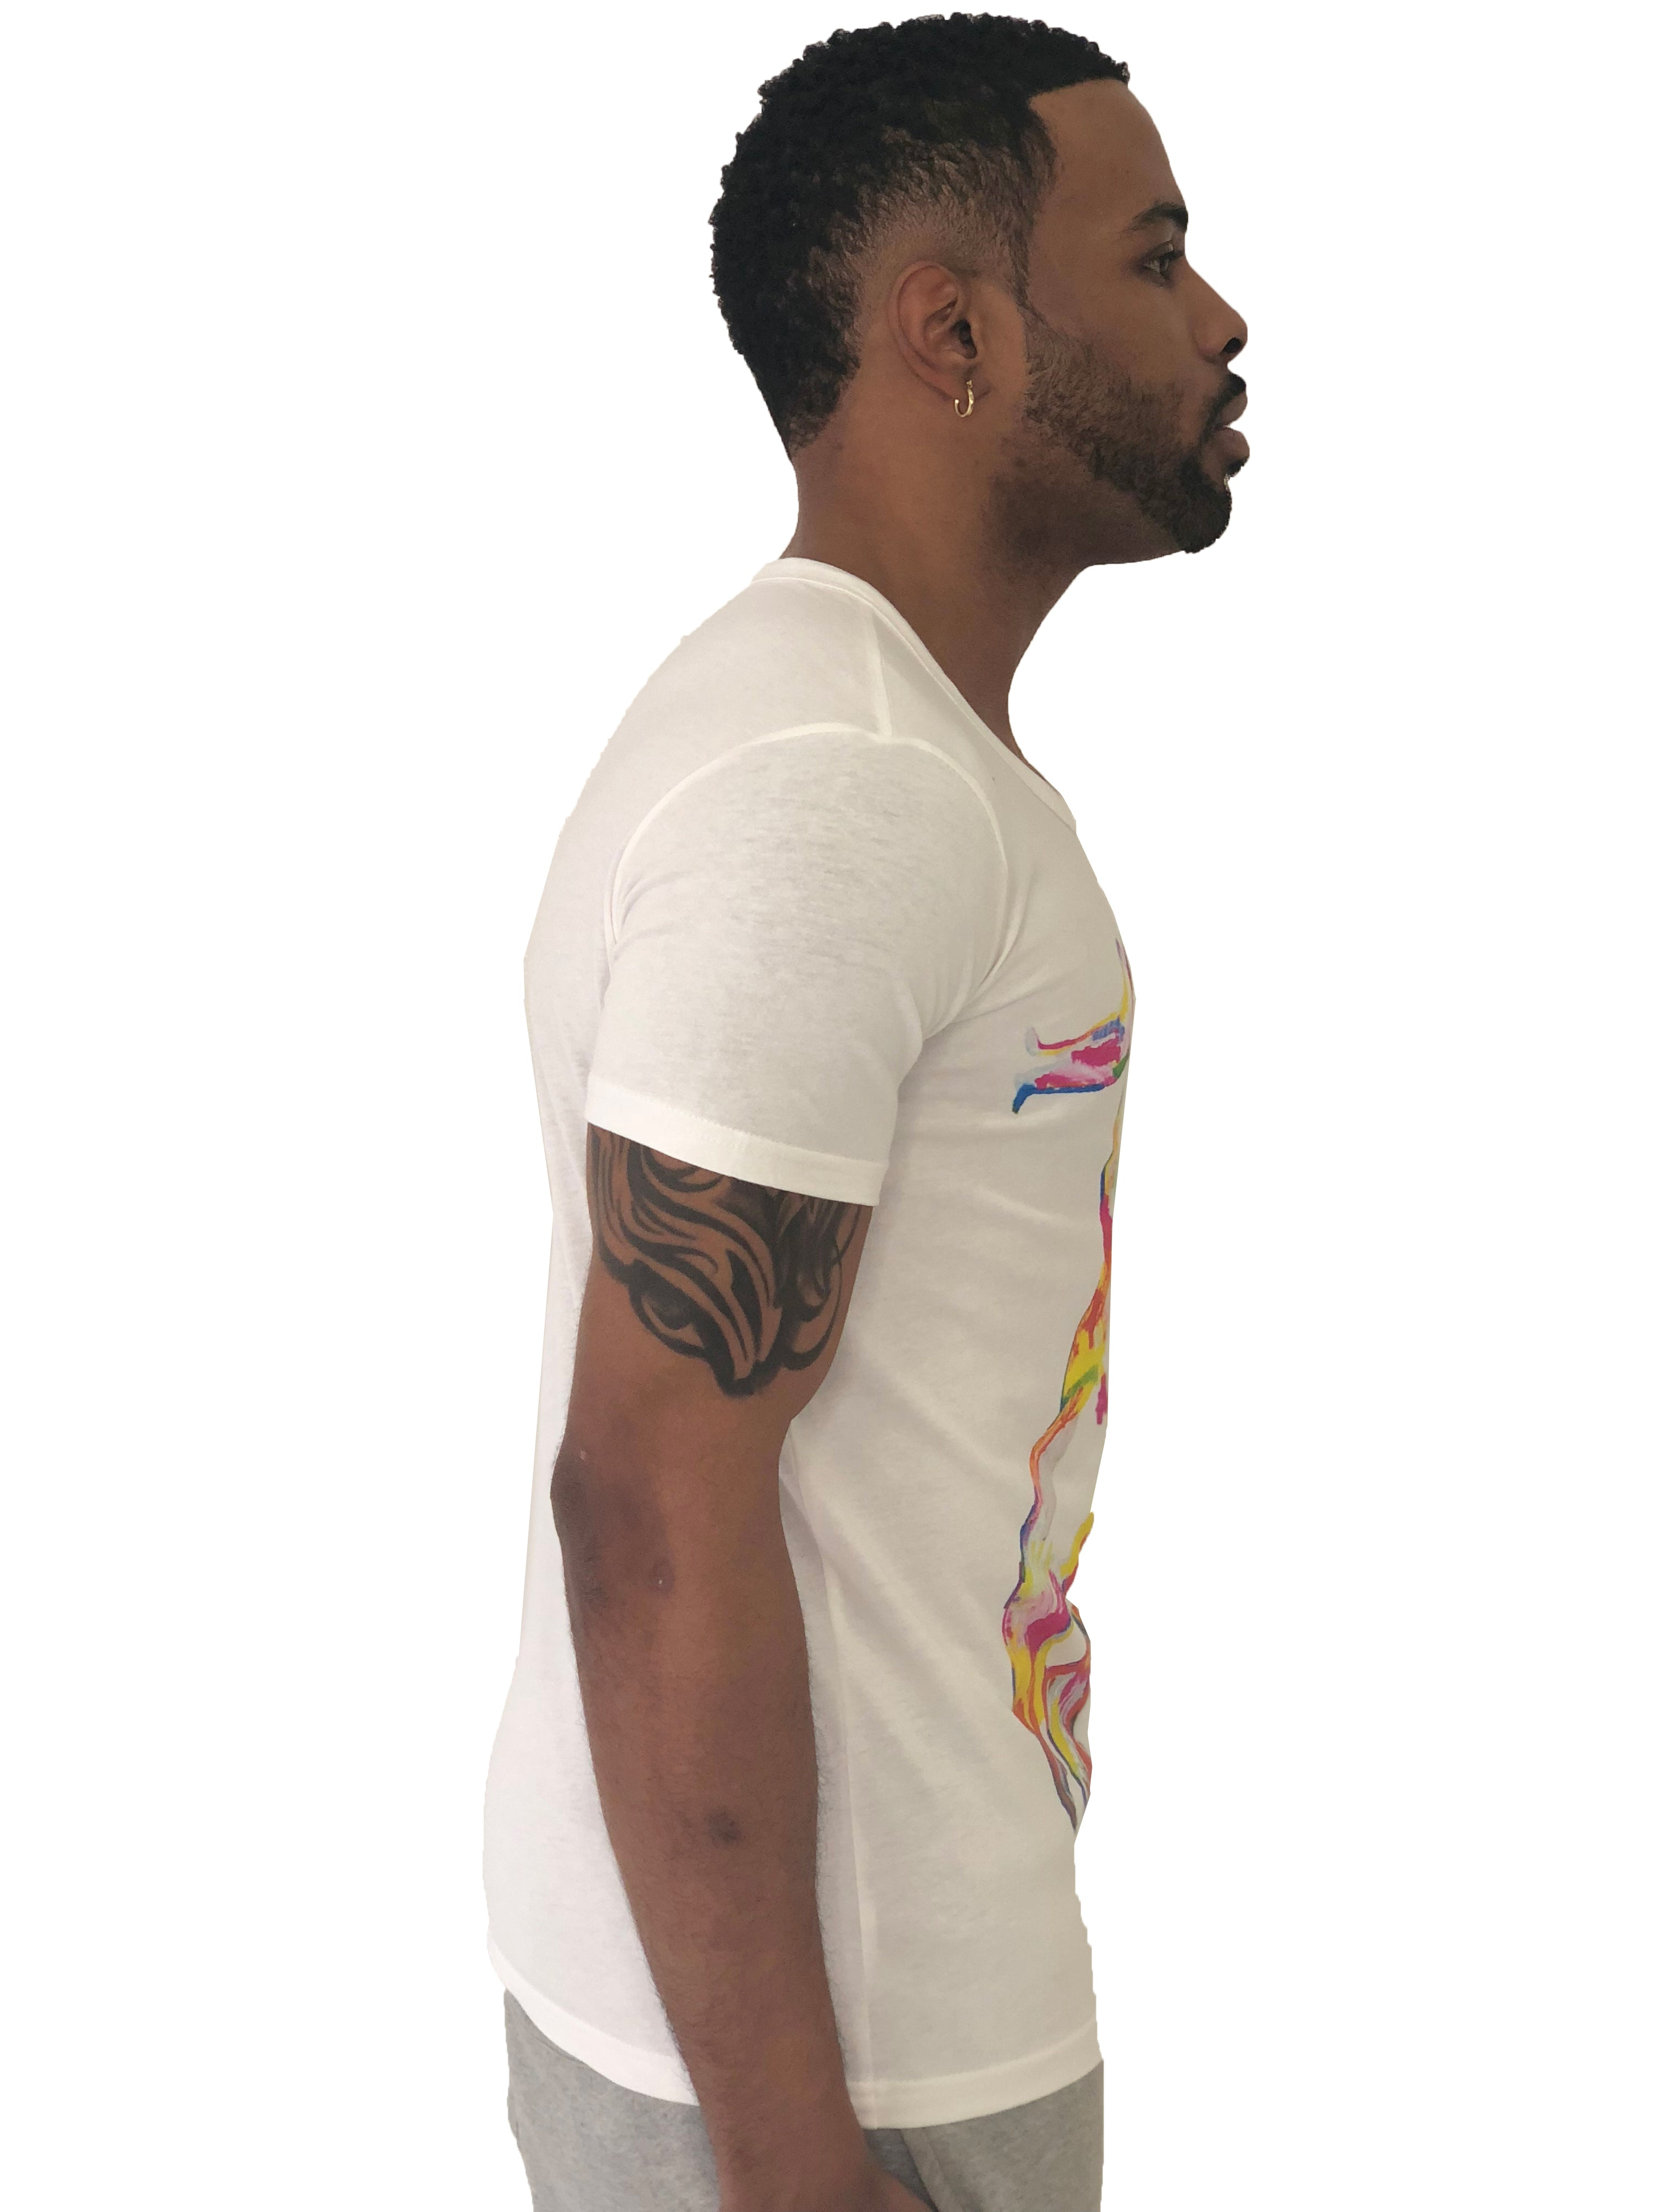 "Men T-Shirt ""G"" Multi color graphics White by iacobuccyounes Italy - Brit Boss"